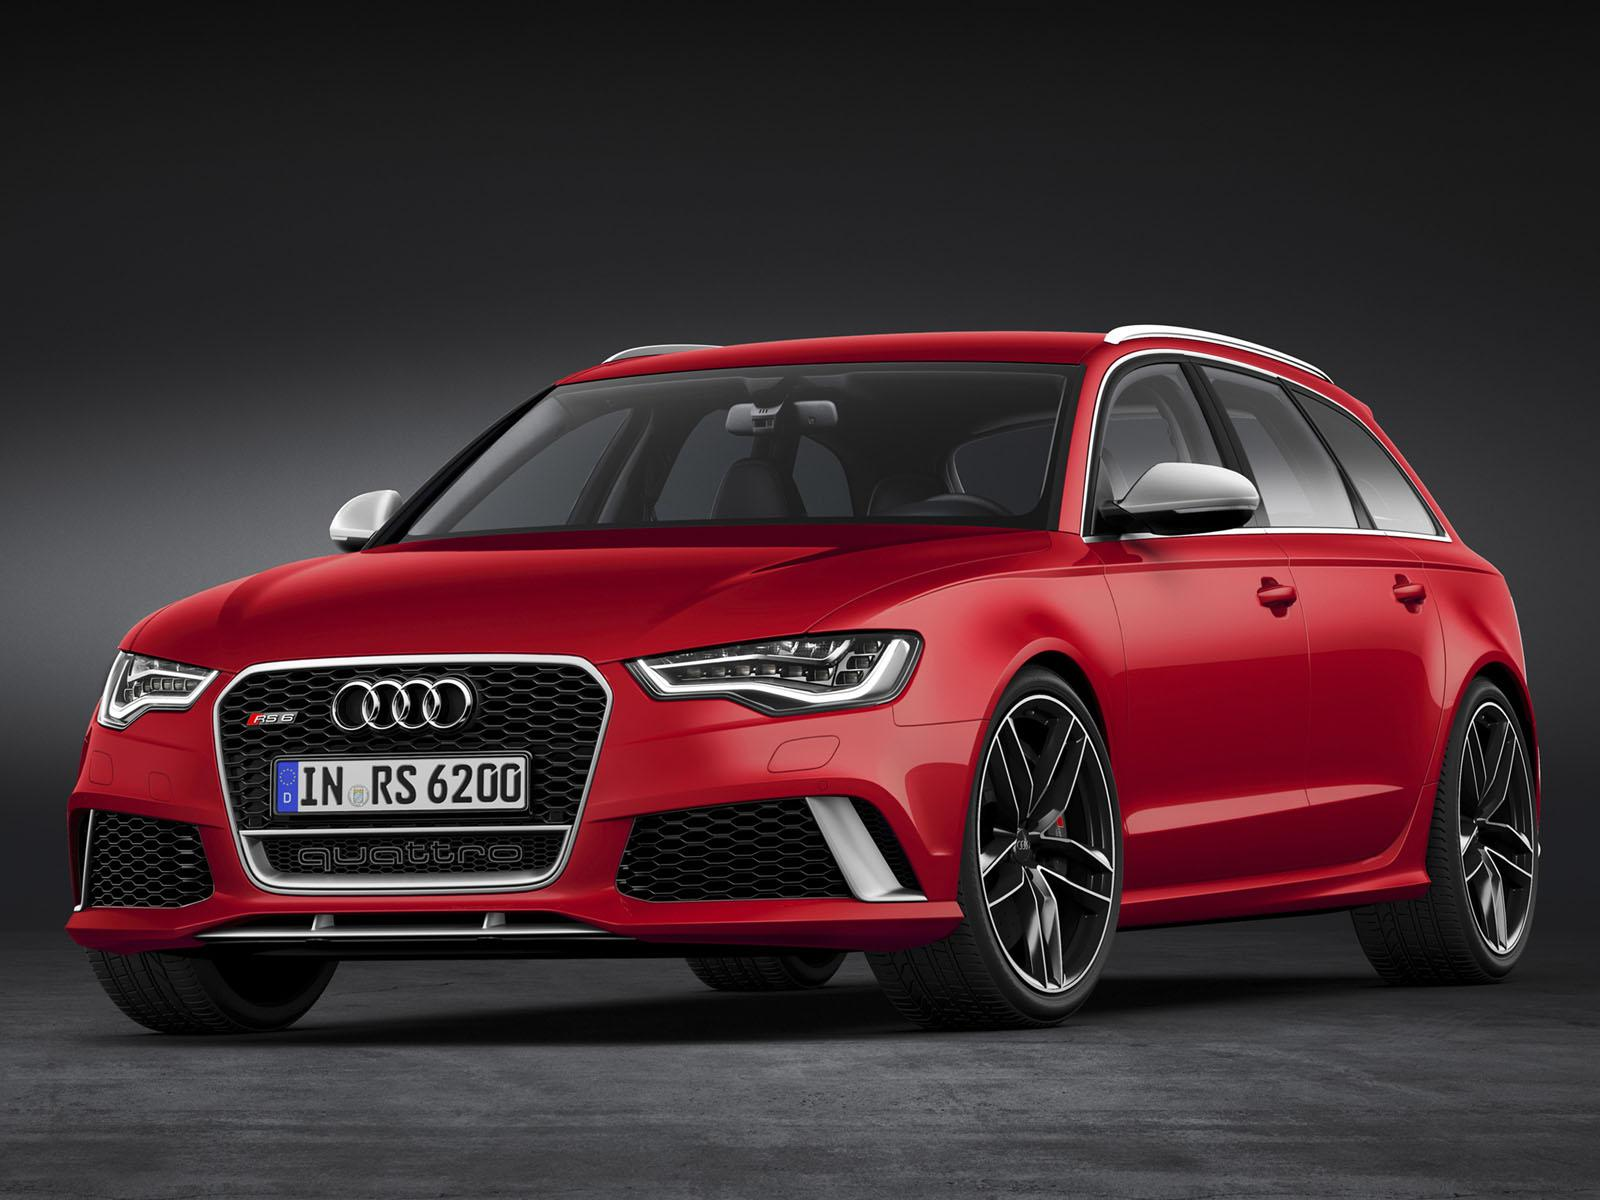 2014 audi rs6 avant 07 Audi has no plans to offer 2014 RS6 Avant in the US